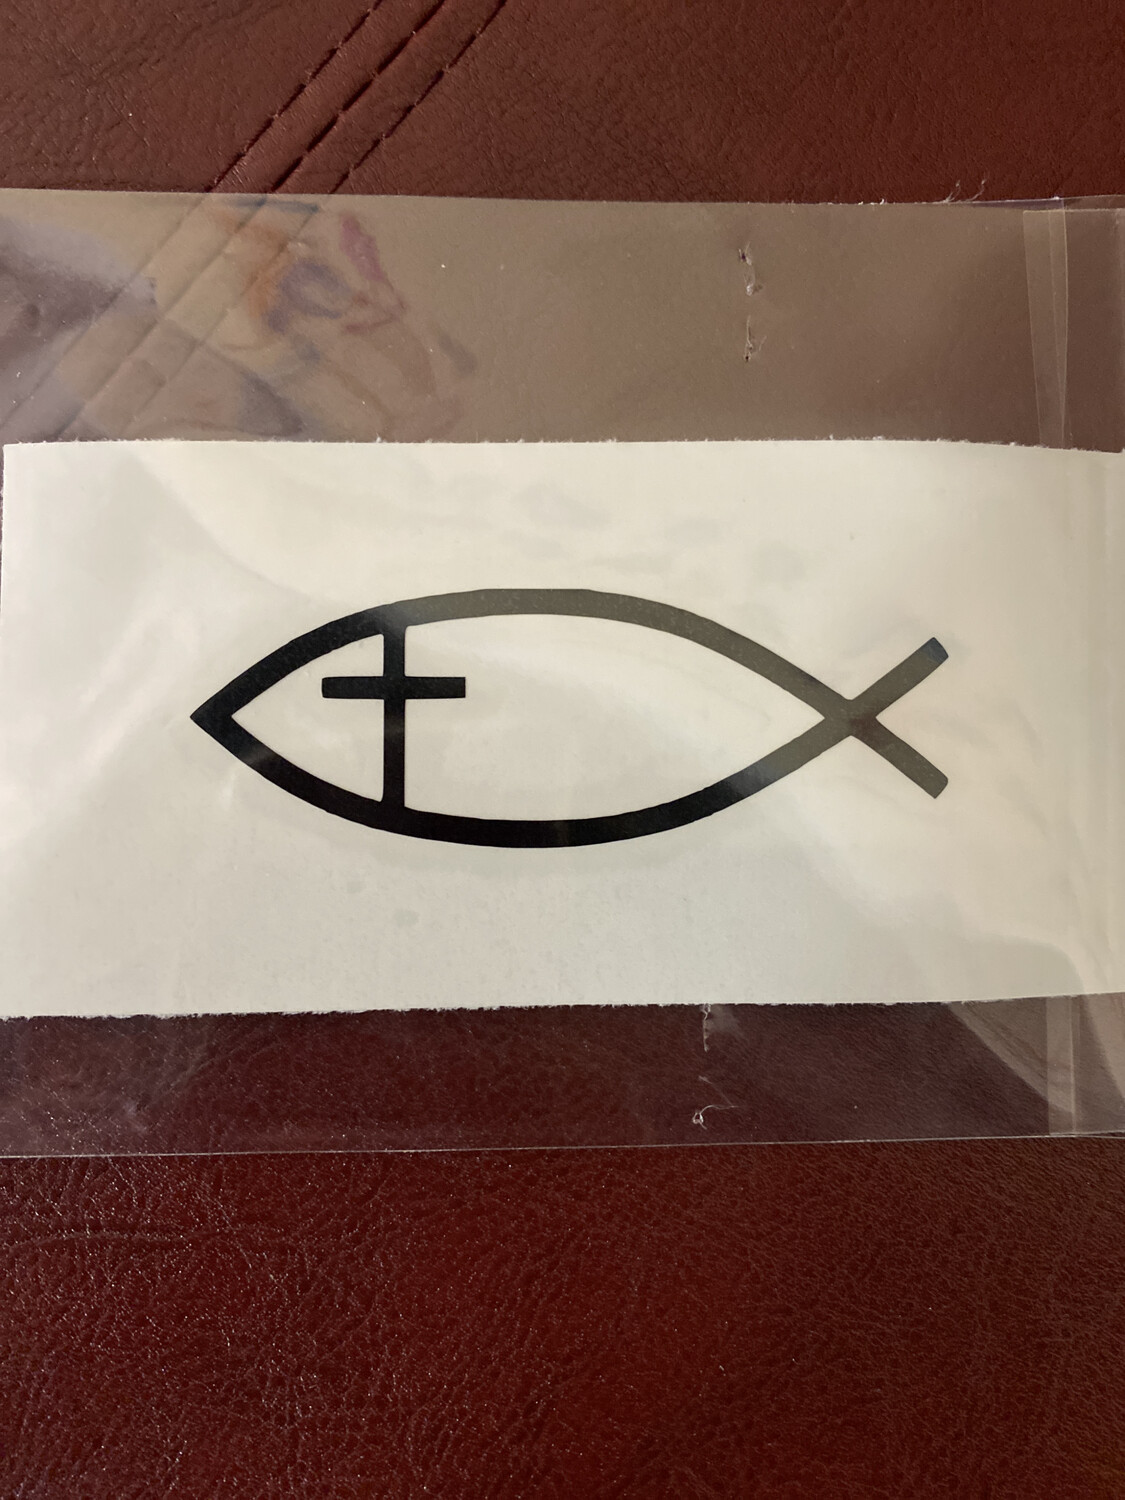 Decal - Fish/Cross